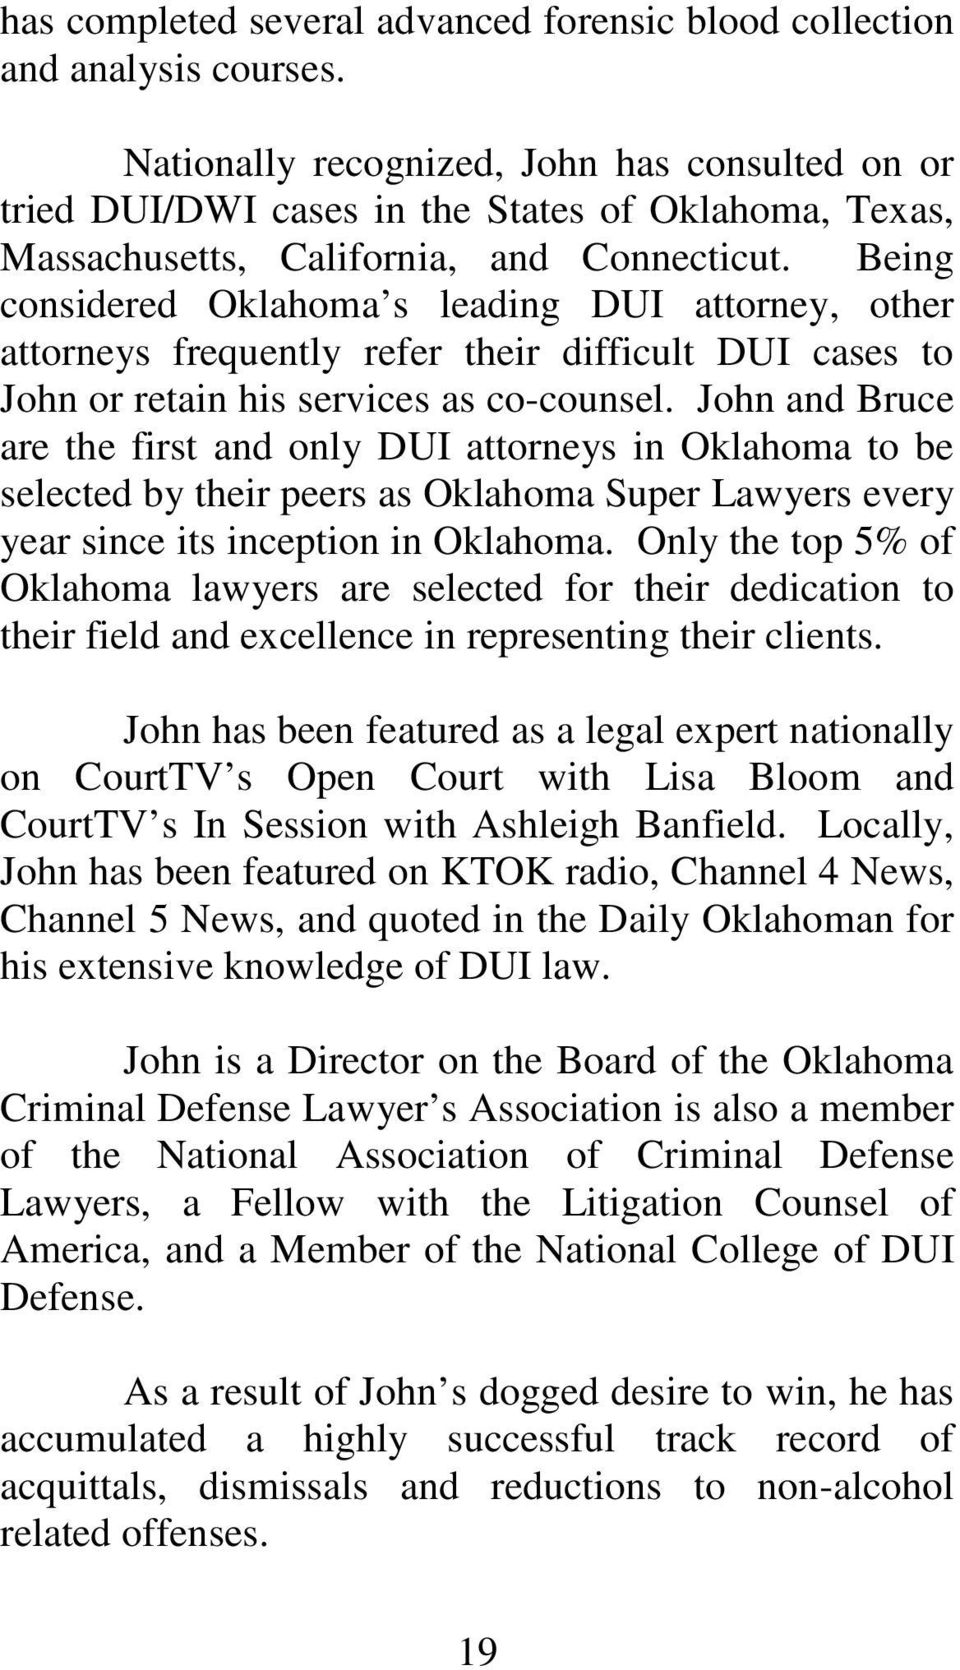 Being considered Oklahoma s leading DUI attorney, other attorneys frequently refer their difficult DUI cases to John or retain his services as co-counsel.